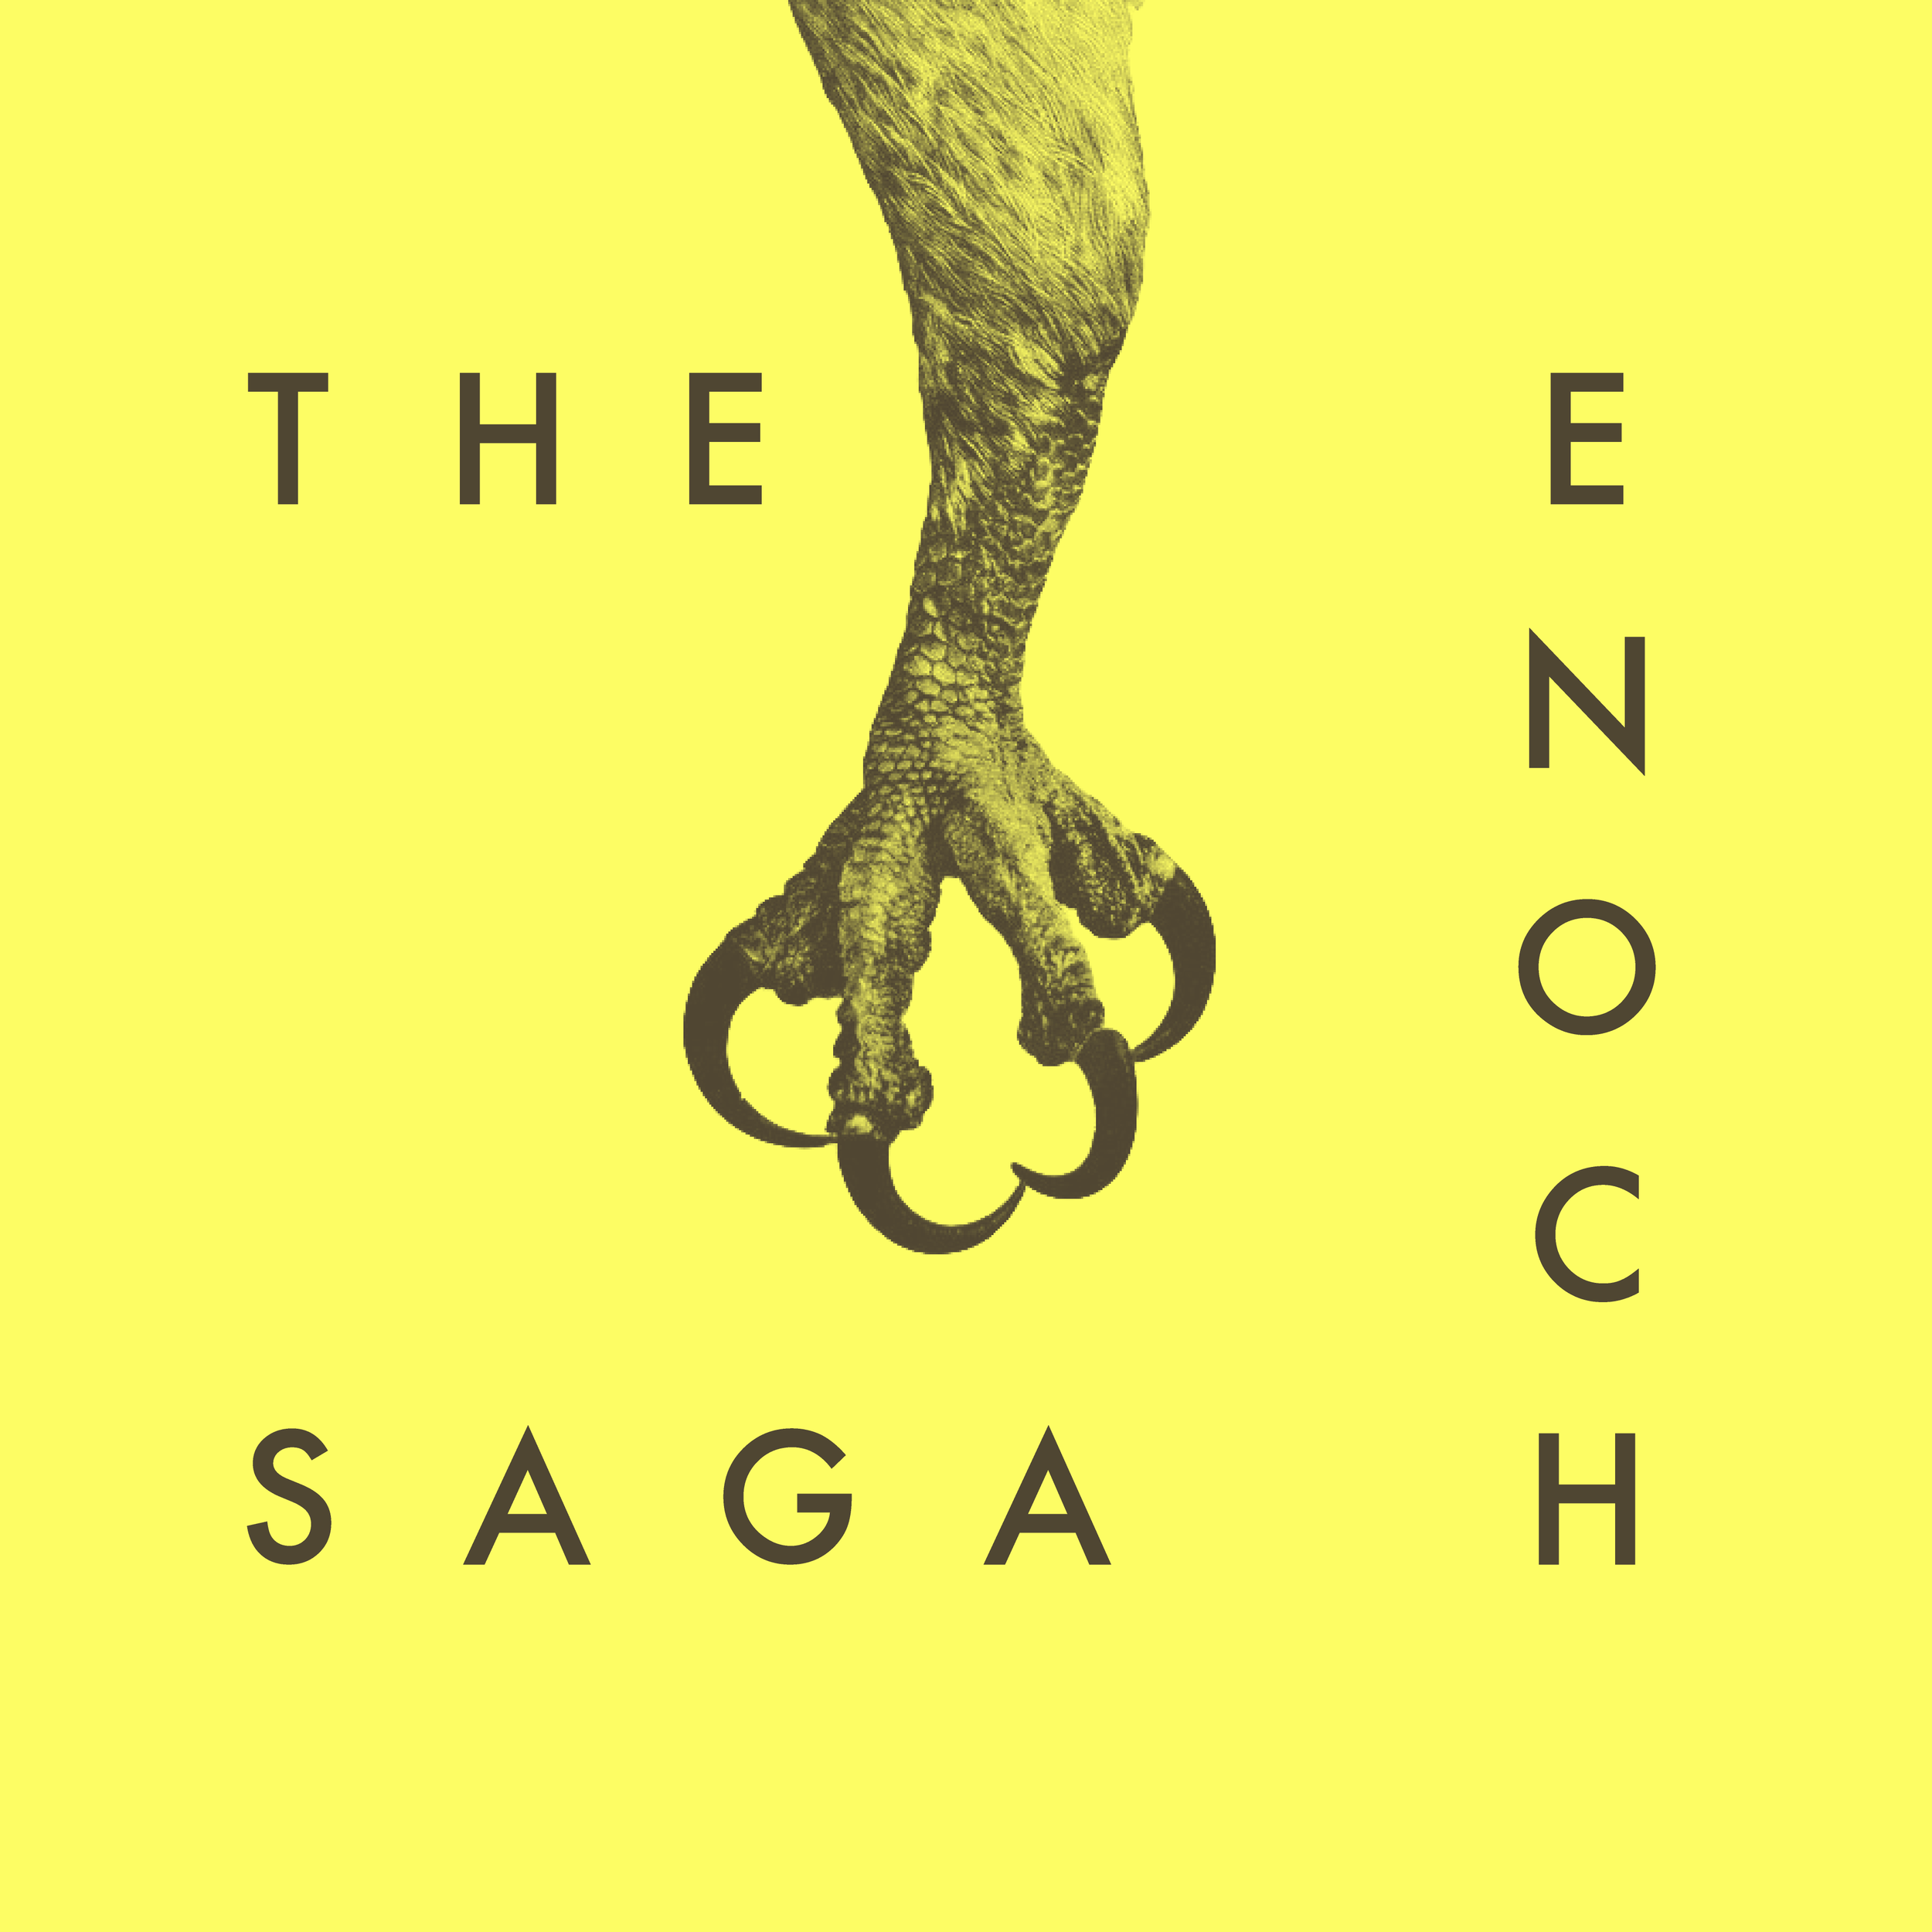 enoch-profile-inverted.png